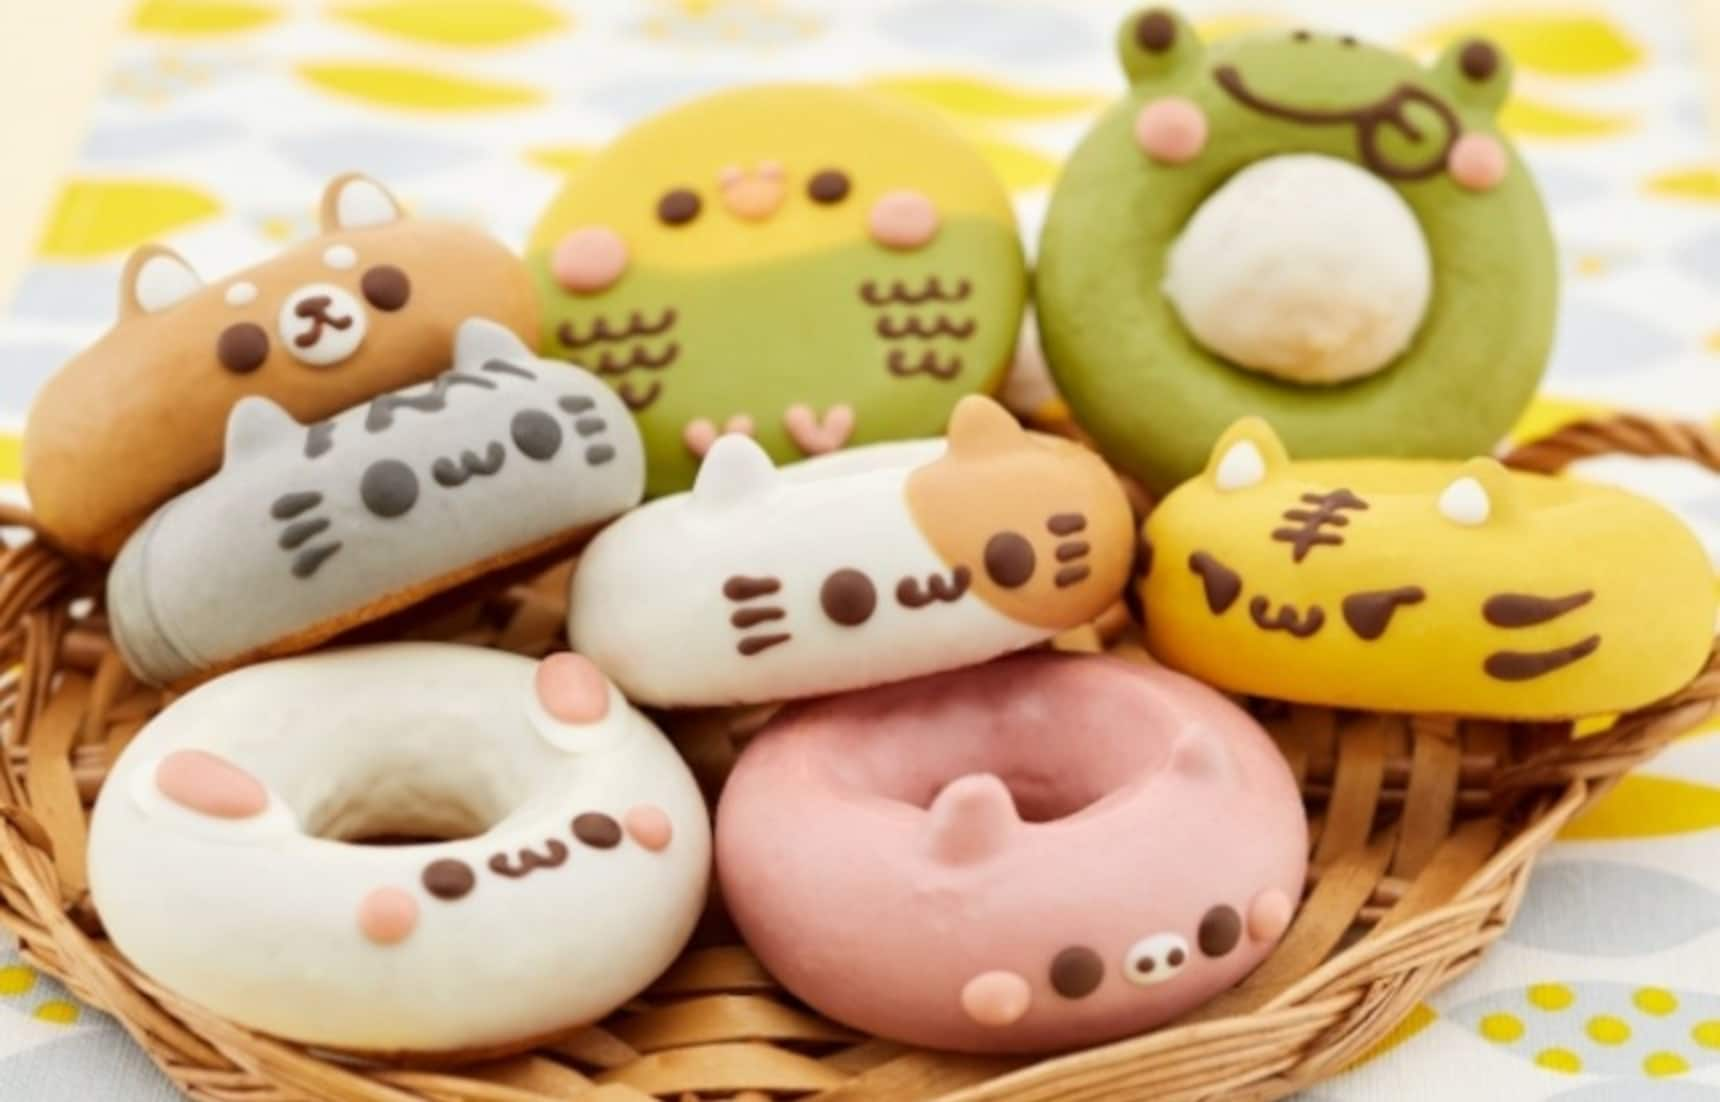 Cute Cat-Themed Do-It-Yourself Doughnut Kit!